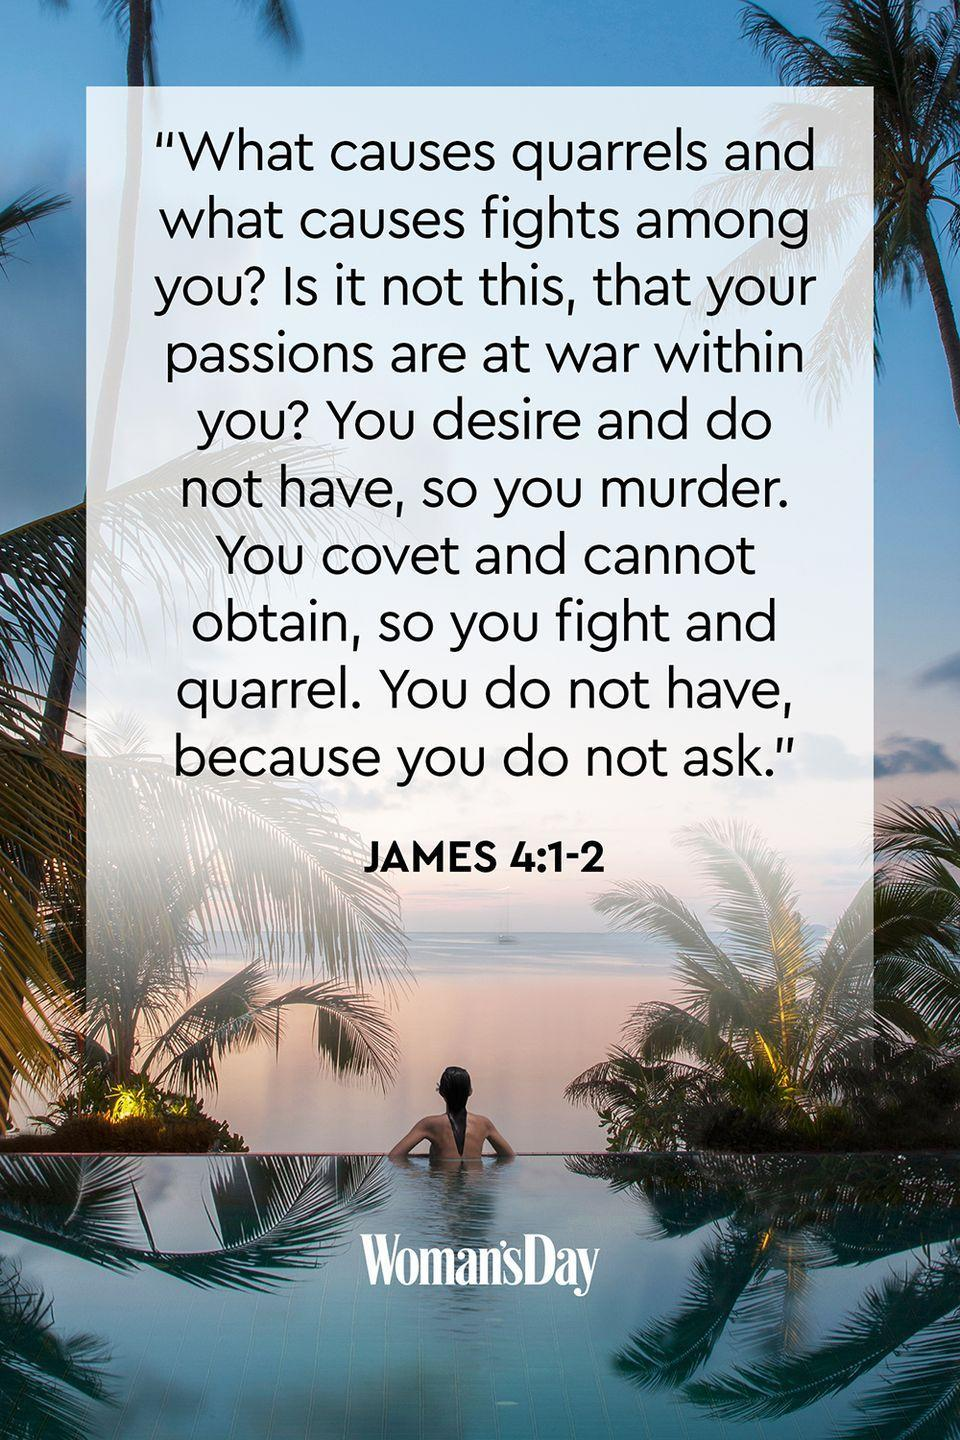 """<p>""""What causes quarrels and what causes fights among you? Is it not this, that your passions are at war within you? You desire and do not have, so you murder. You covet and cannot obtain, so you fight and quarrel. You do not have, because you do not ask.""""</p><p><strong>The Good News</strong>: Anger and jealousy can make you act out, which can lead to sin. Instead of taking from others, ask God to provide you with what you need and to give you control over your anger. </p>"""